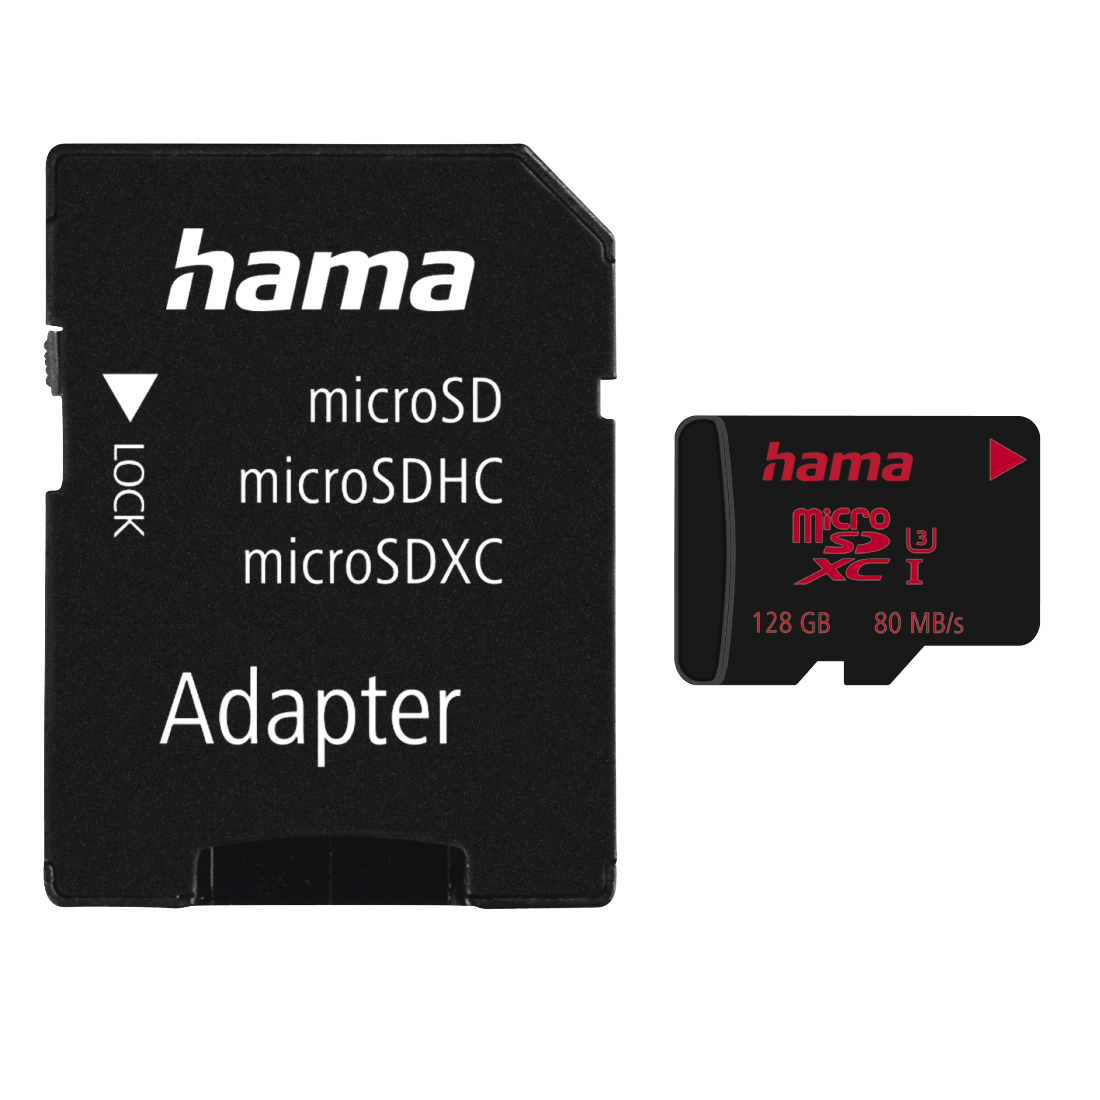 abx Druckfähige Abbildung - Hama, microSDXC 128GB UHS Speed Class 3 UHS-I 80MB/s + Adapter/Mobile